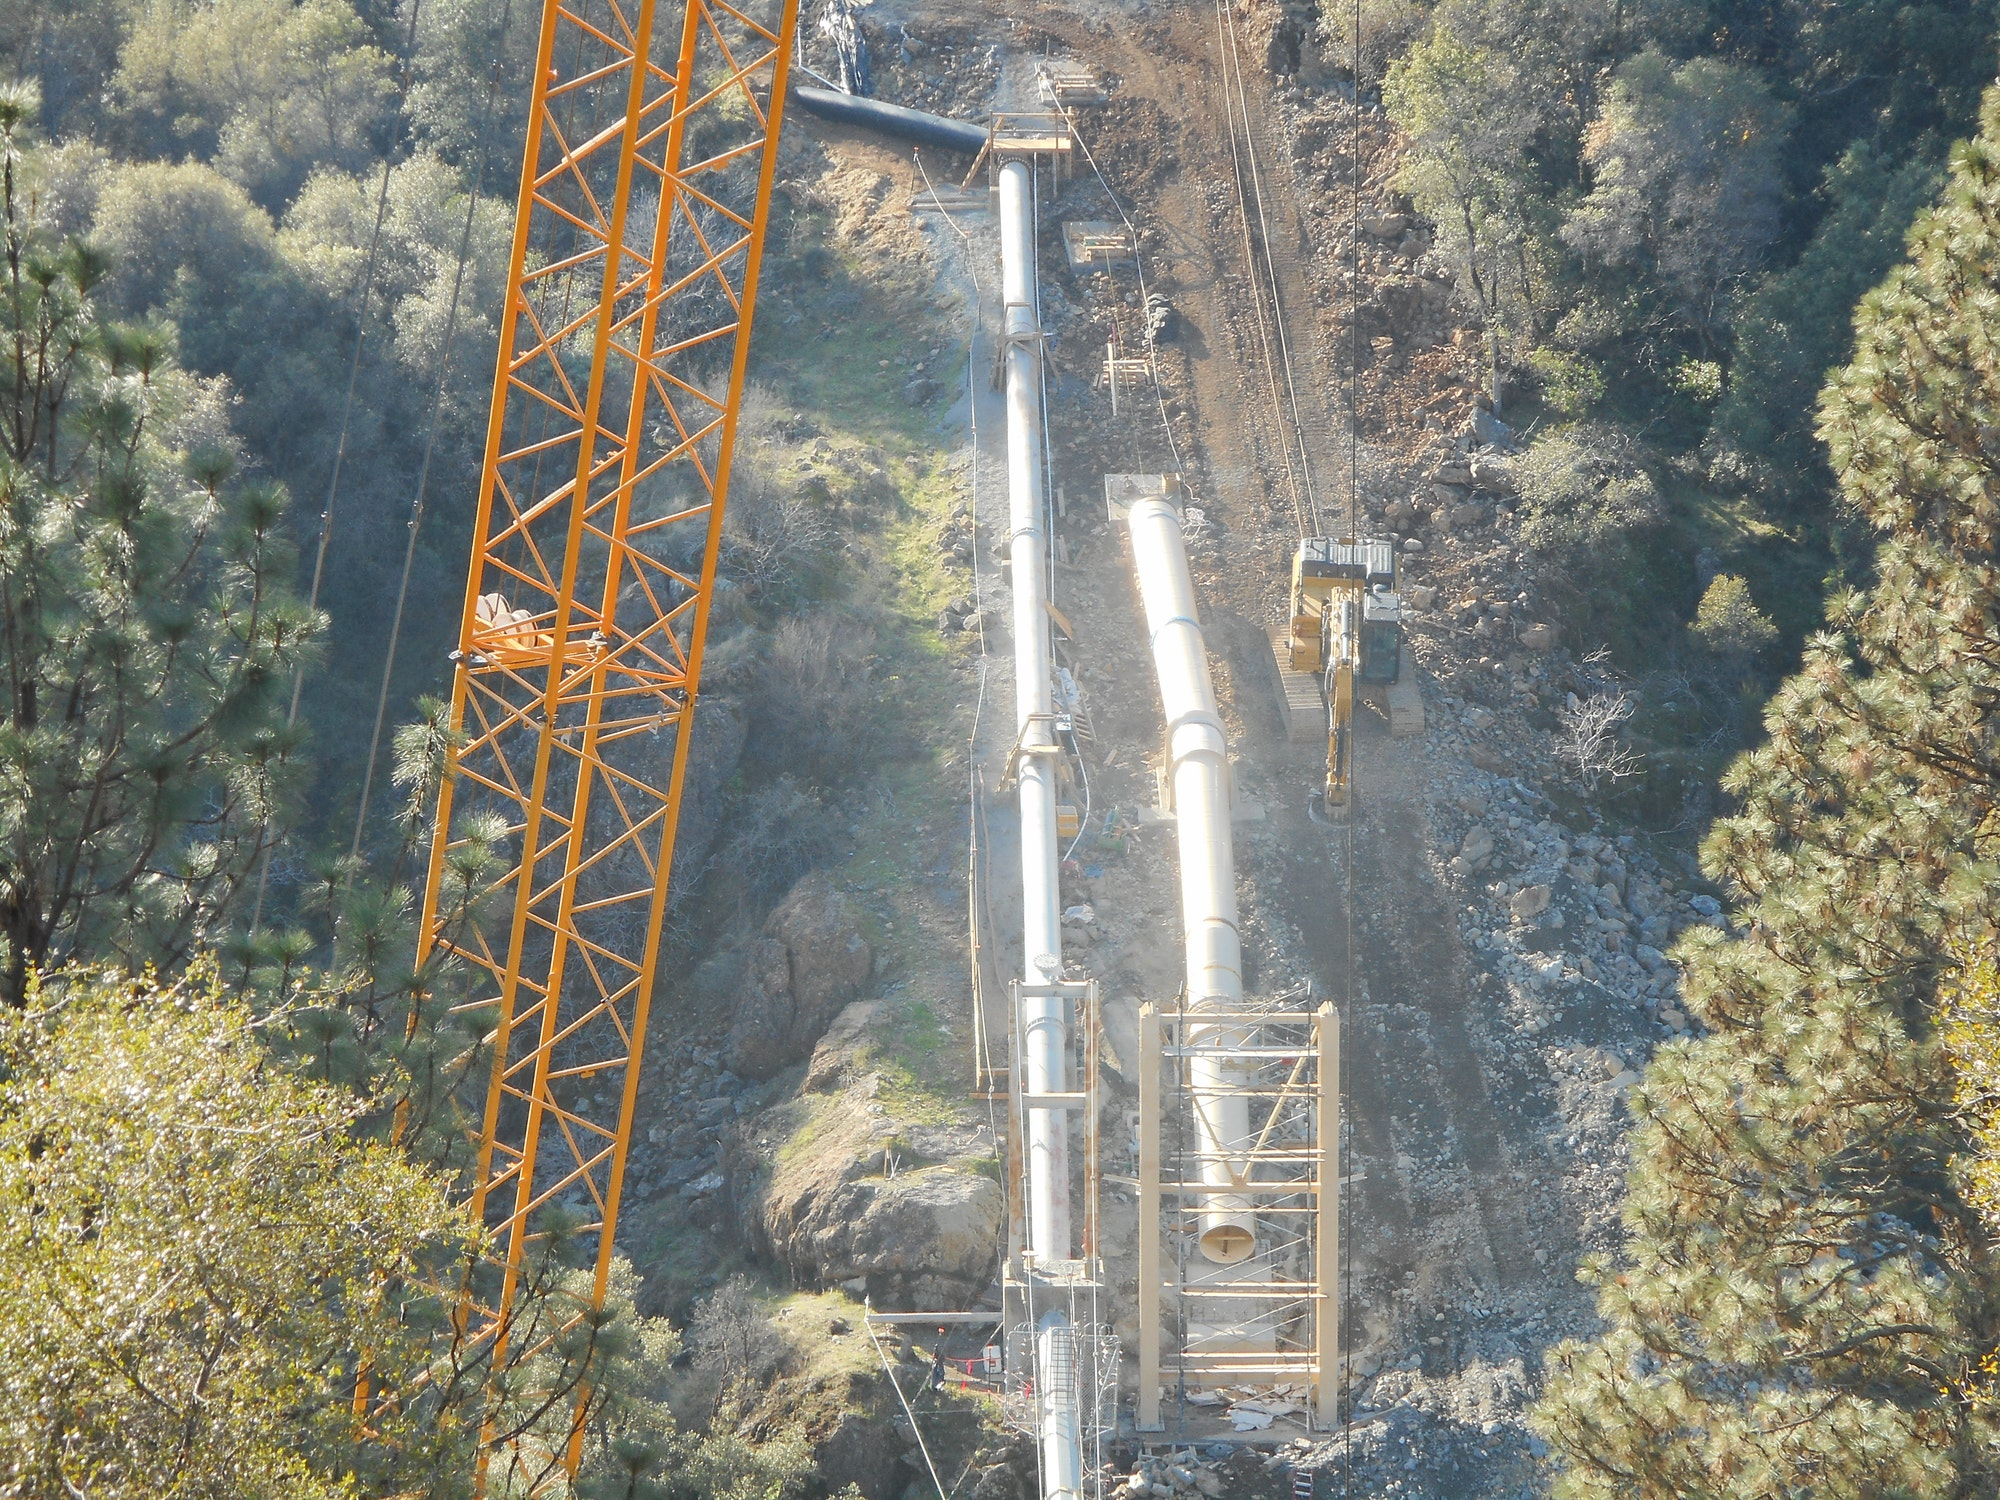 Pipeline, crane, trees, forest, construction